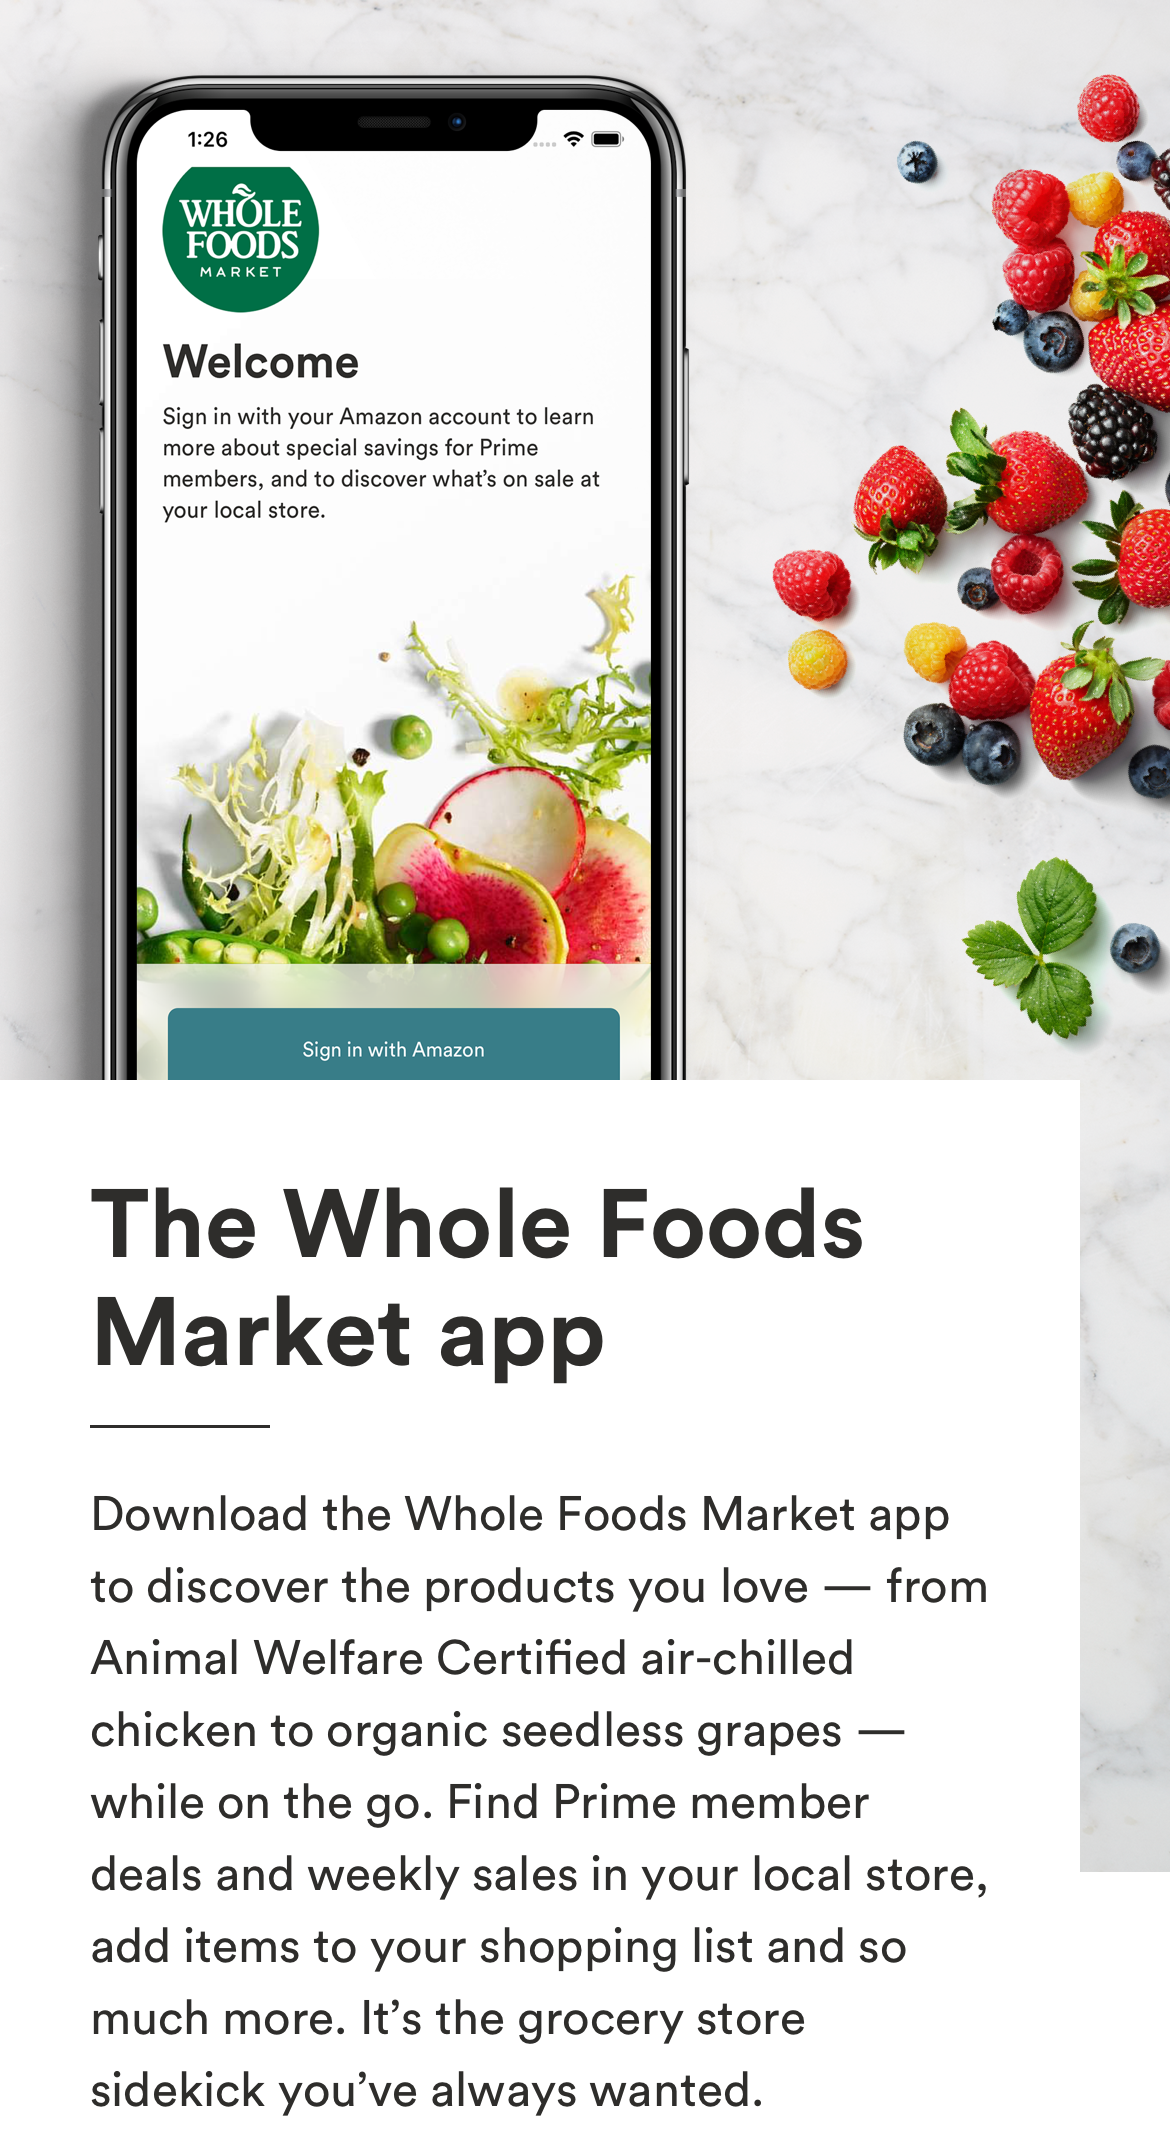 The Whole Foods Market App. Download the Whole Foods Market app to discover the products you love — from Animal Welfare Certified air-chilled chicken to organic seedless grapes — while on-the-go. Find Prime member deals and weekly sales in your local store, add items to your shopping list and so much more. It's the grocery store sidekick you've always needed